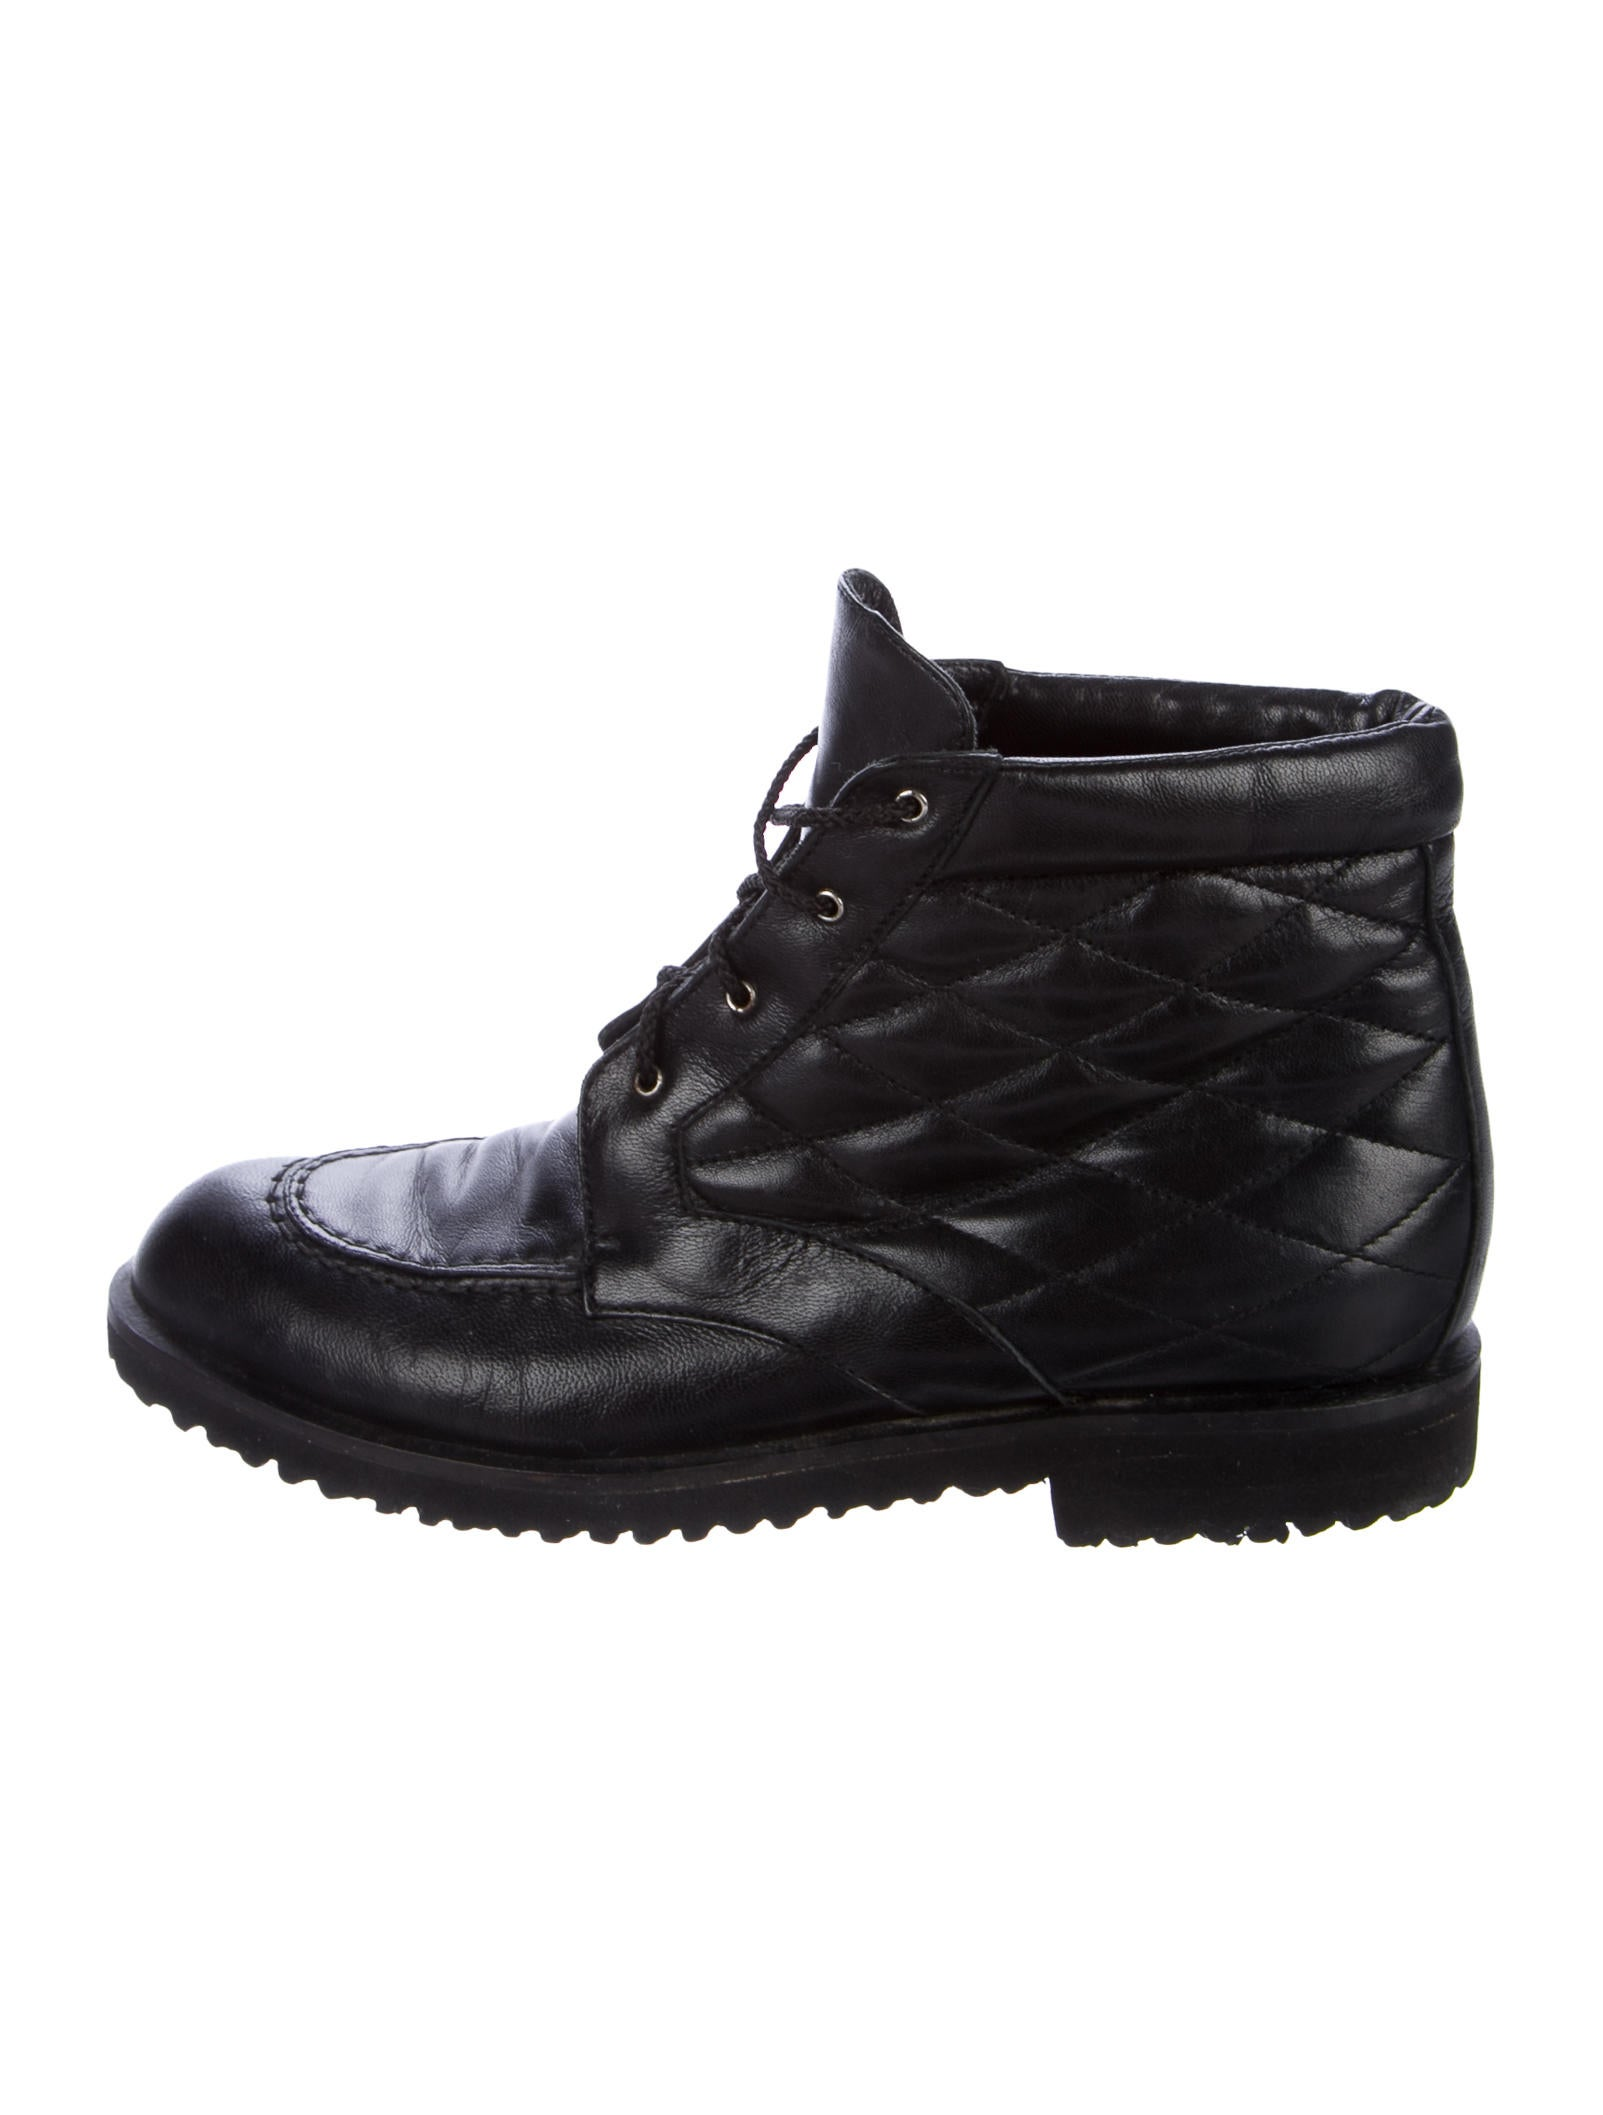 Bally Quilted Leather Ankle Boots popular LWGicX